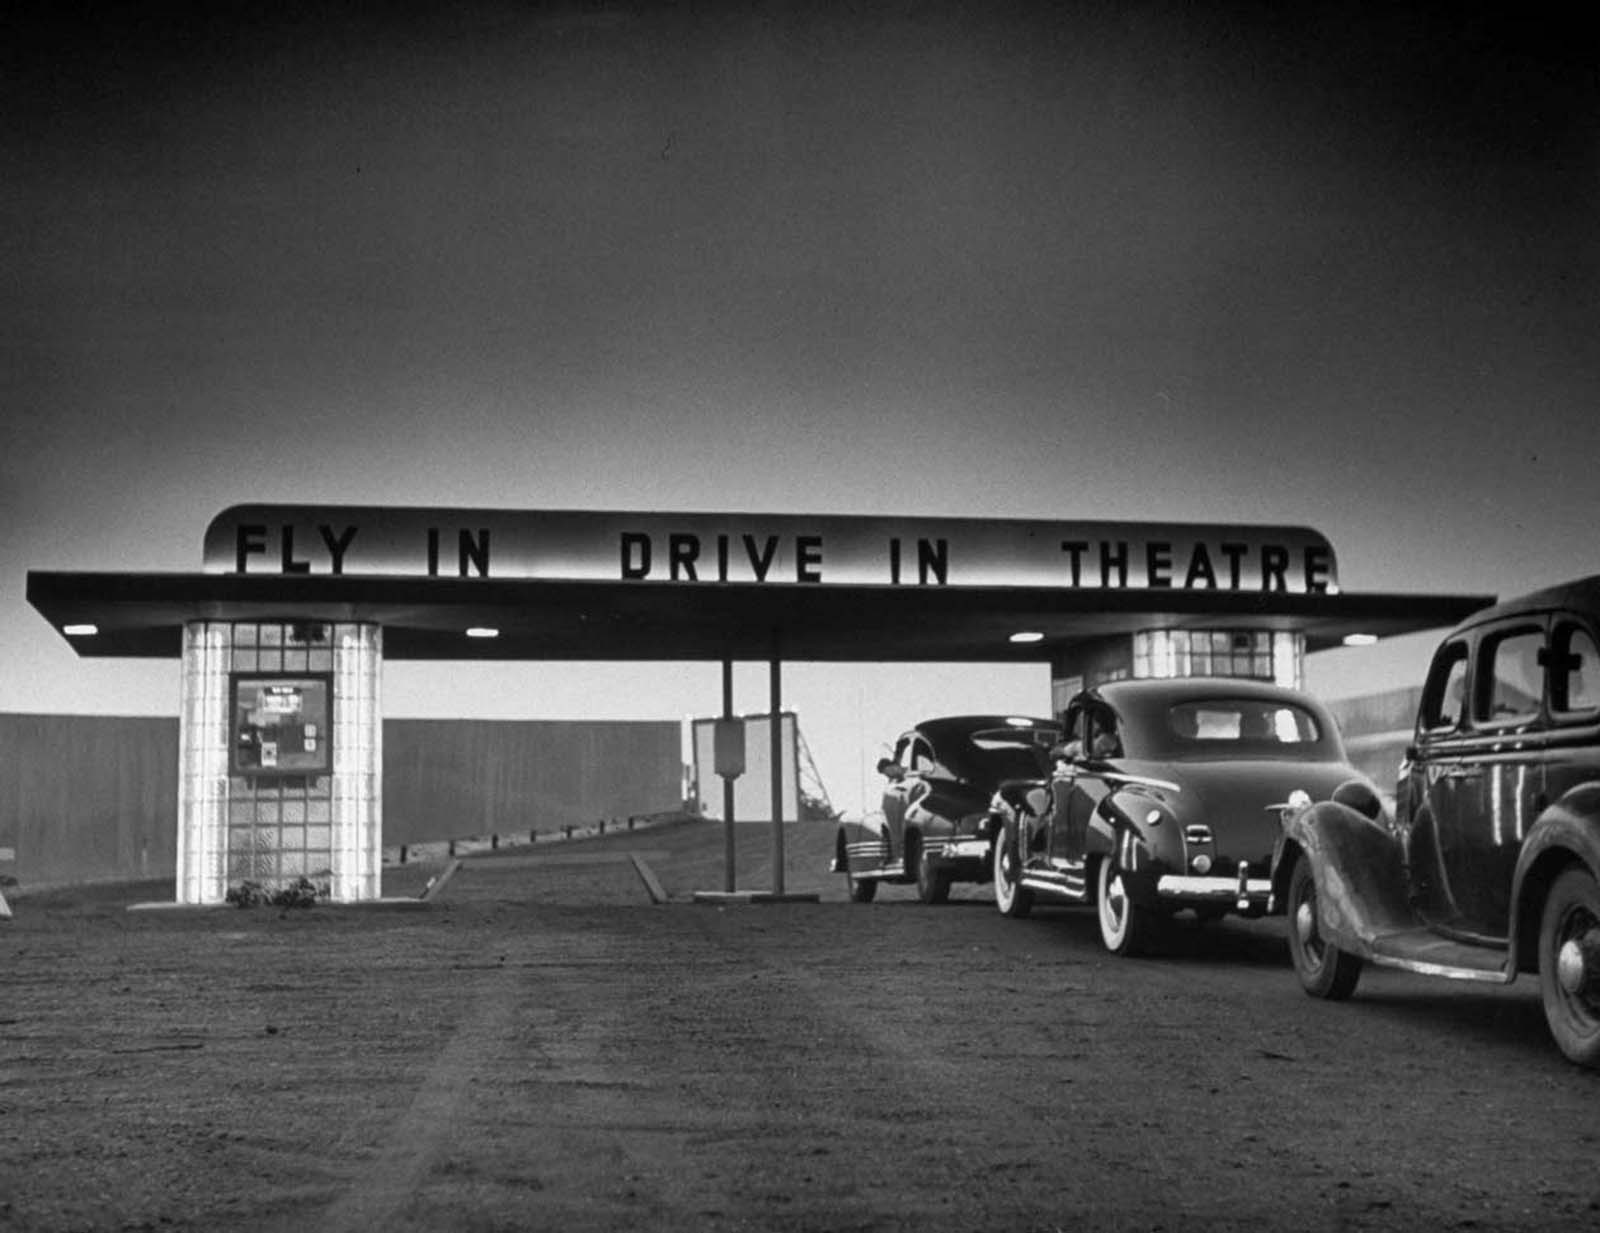 Some customers arriving by car at area Fly-In Drive-In Theatre.